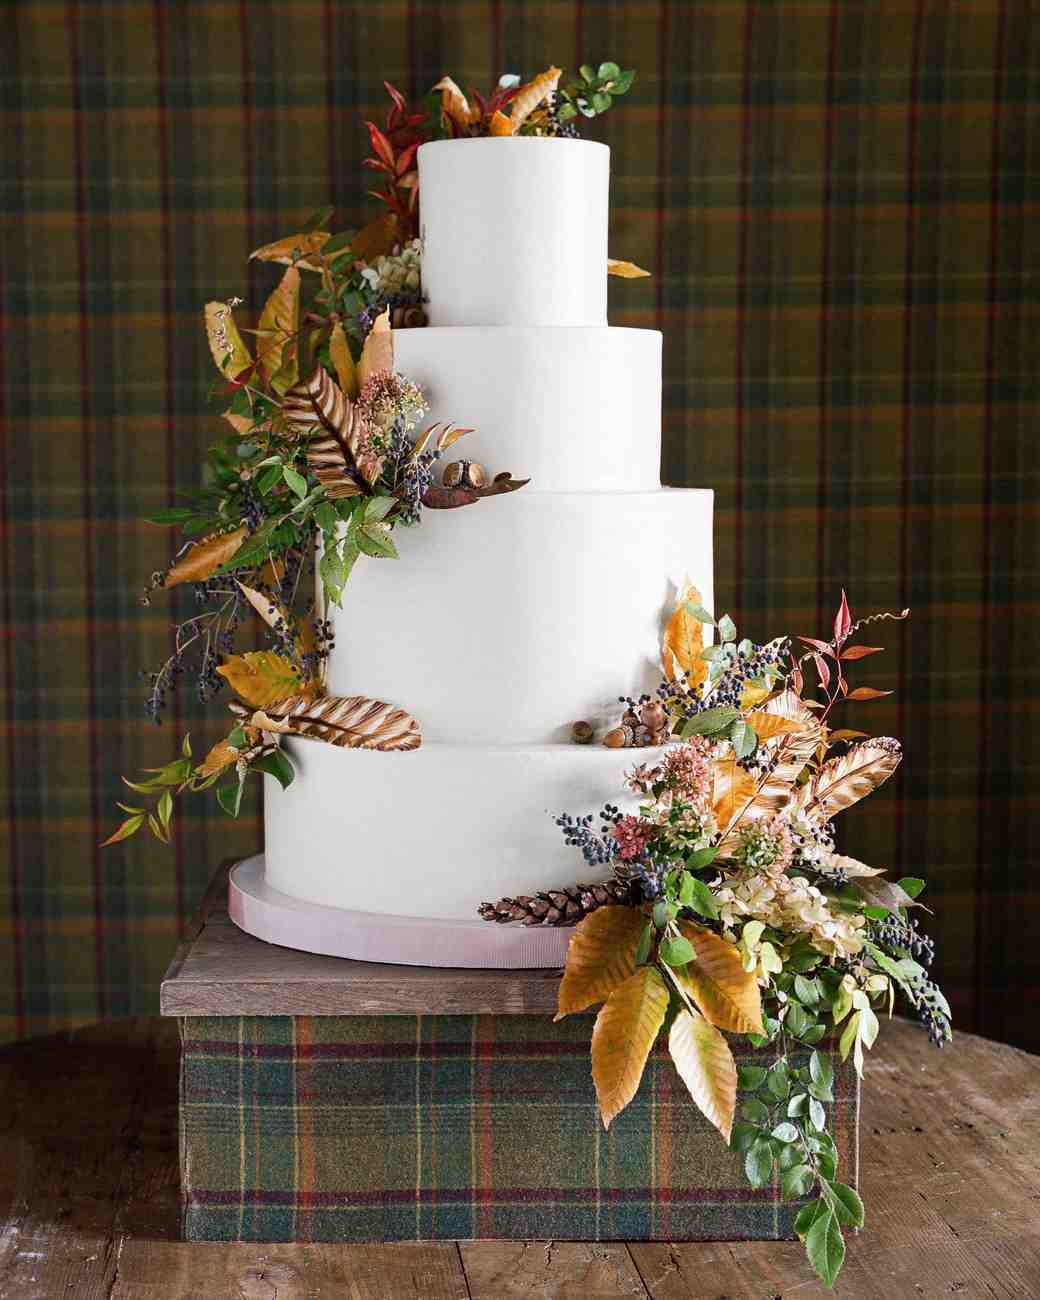 53 Fall Wedding Cakes We Re Obsessed With: An Elegant, Autumnal Wedding In Tennessee